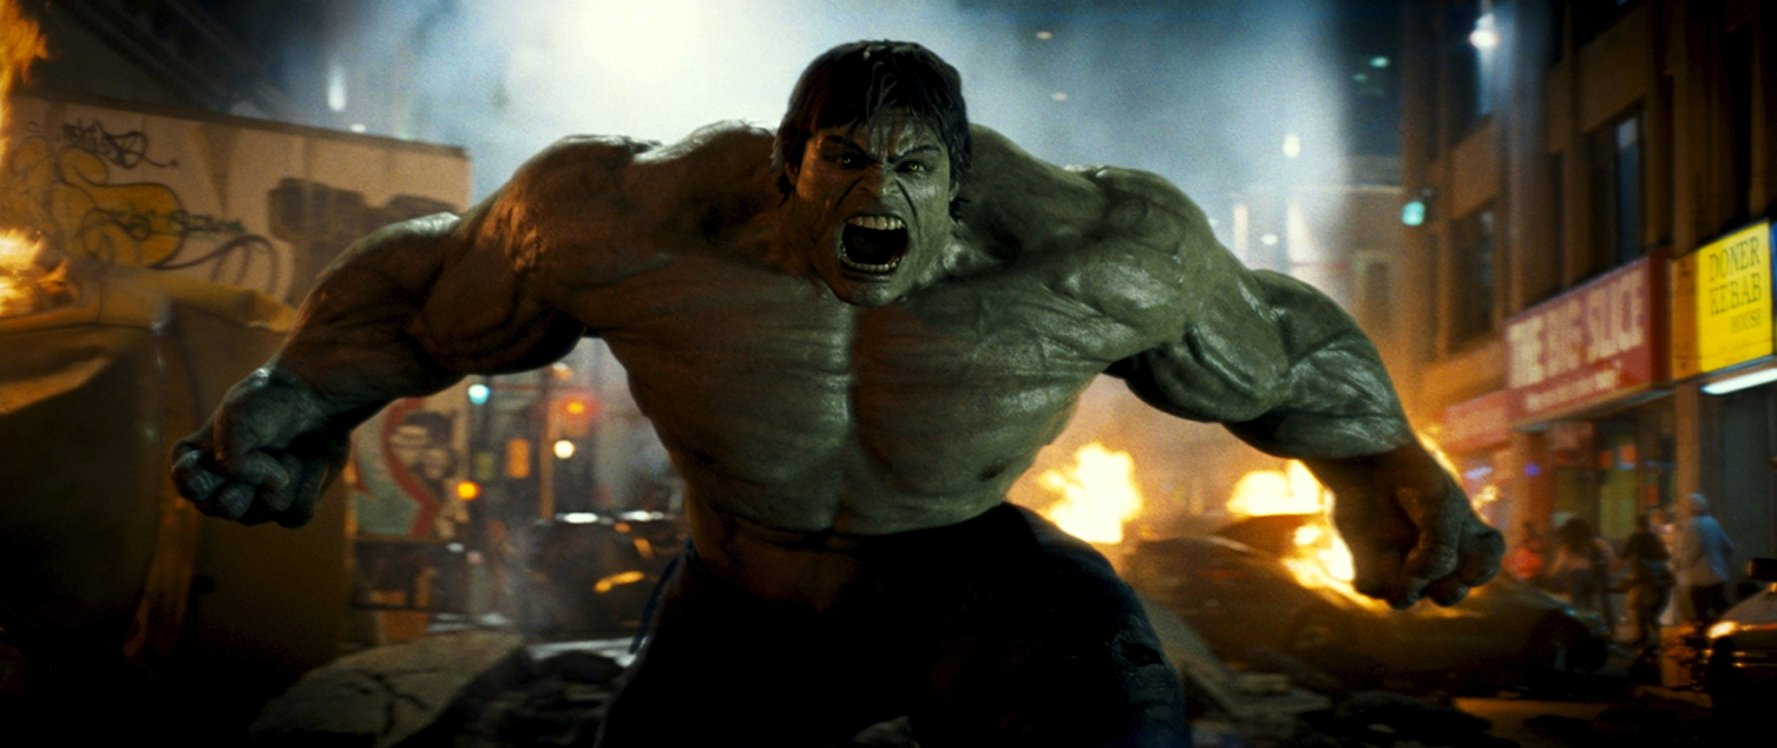 Edward Norton as The Hulk in The Incredible Hulk (2008)